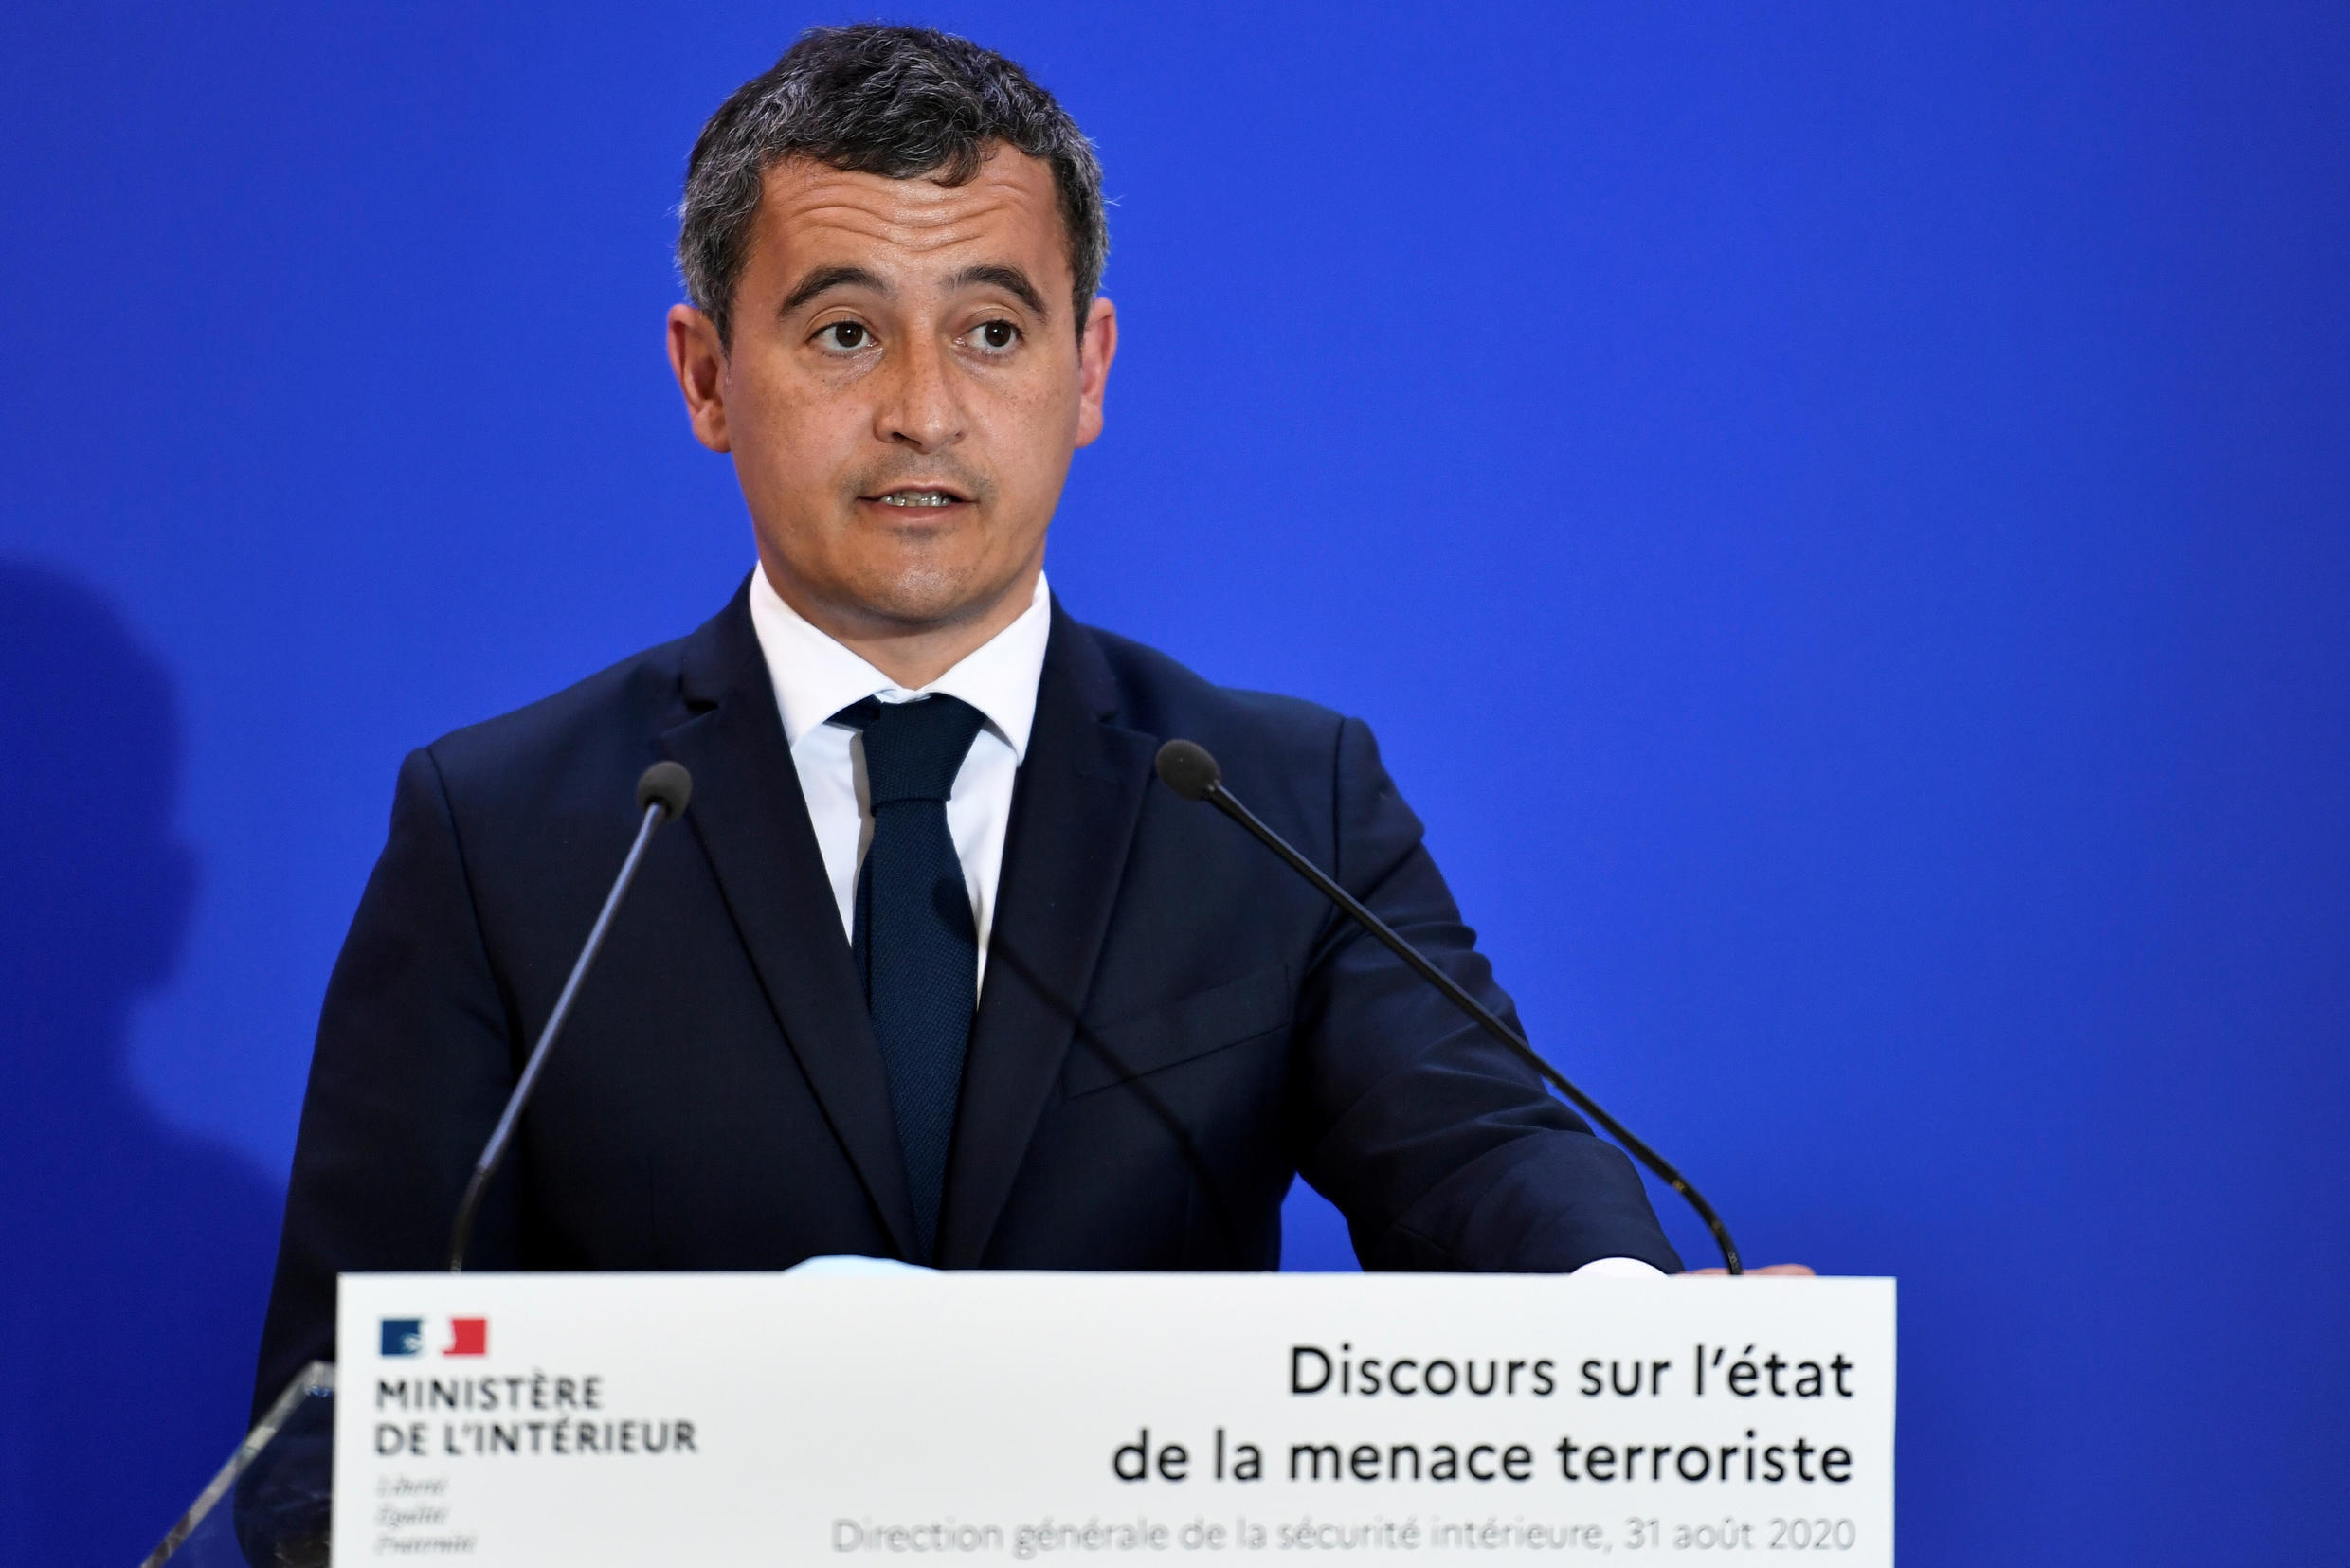 French Interior Minister Gerald Darmanin in Paris, France August 31, 2020